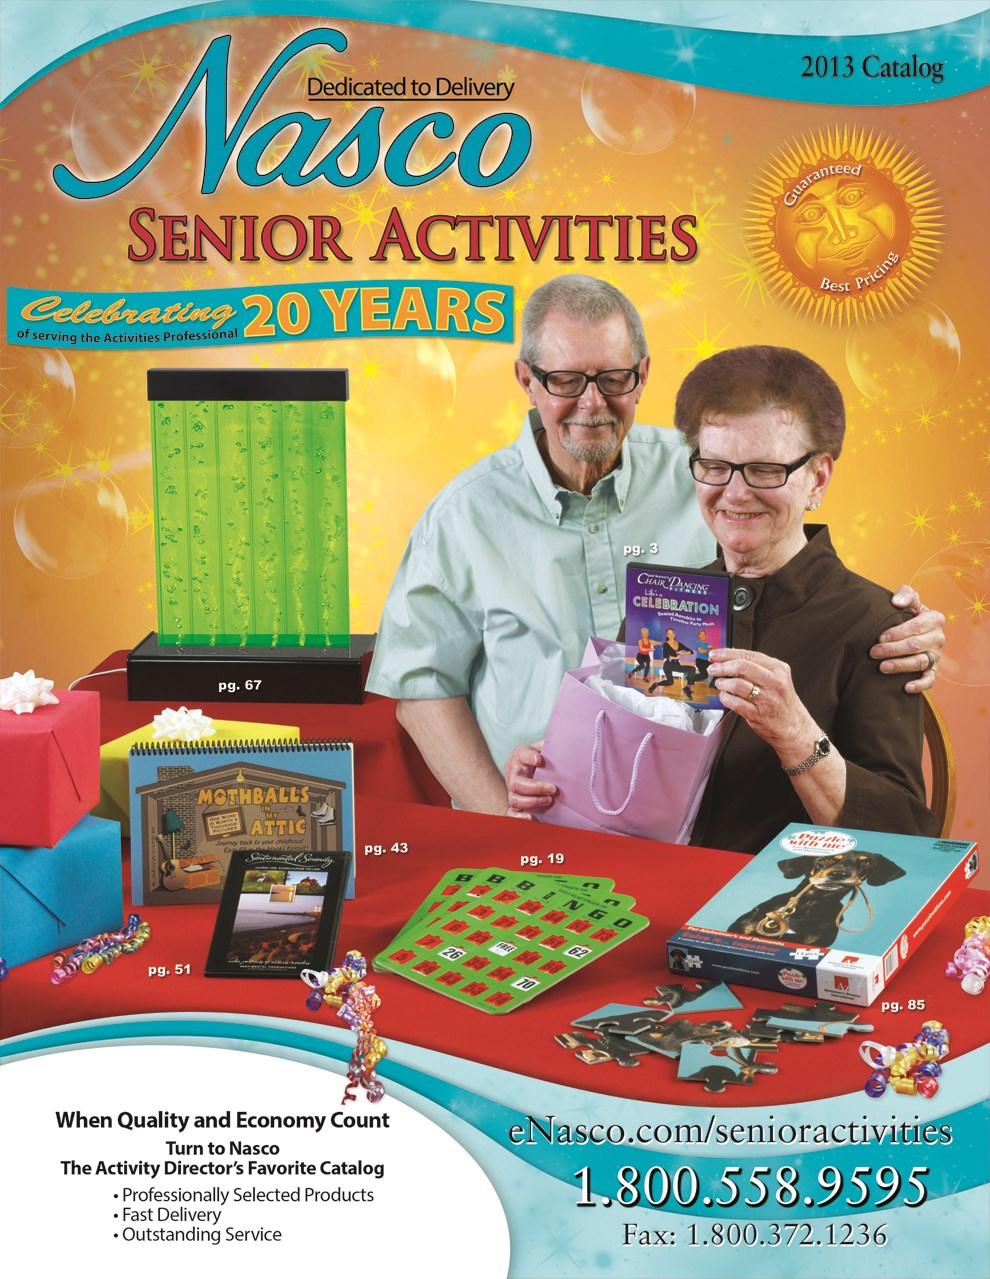 Newest Nasco activities catalog now available